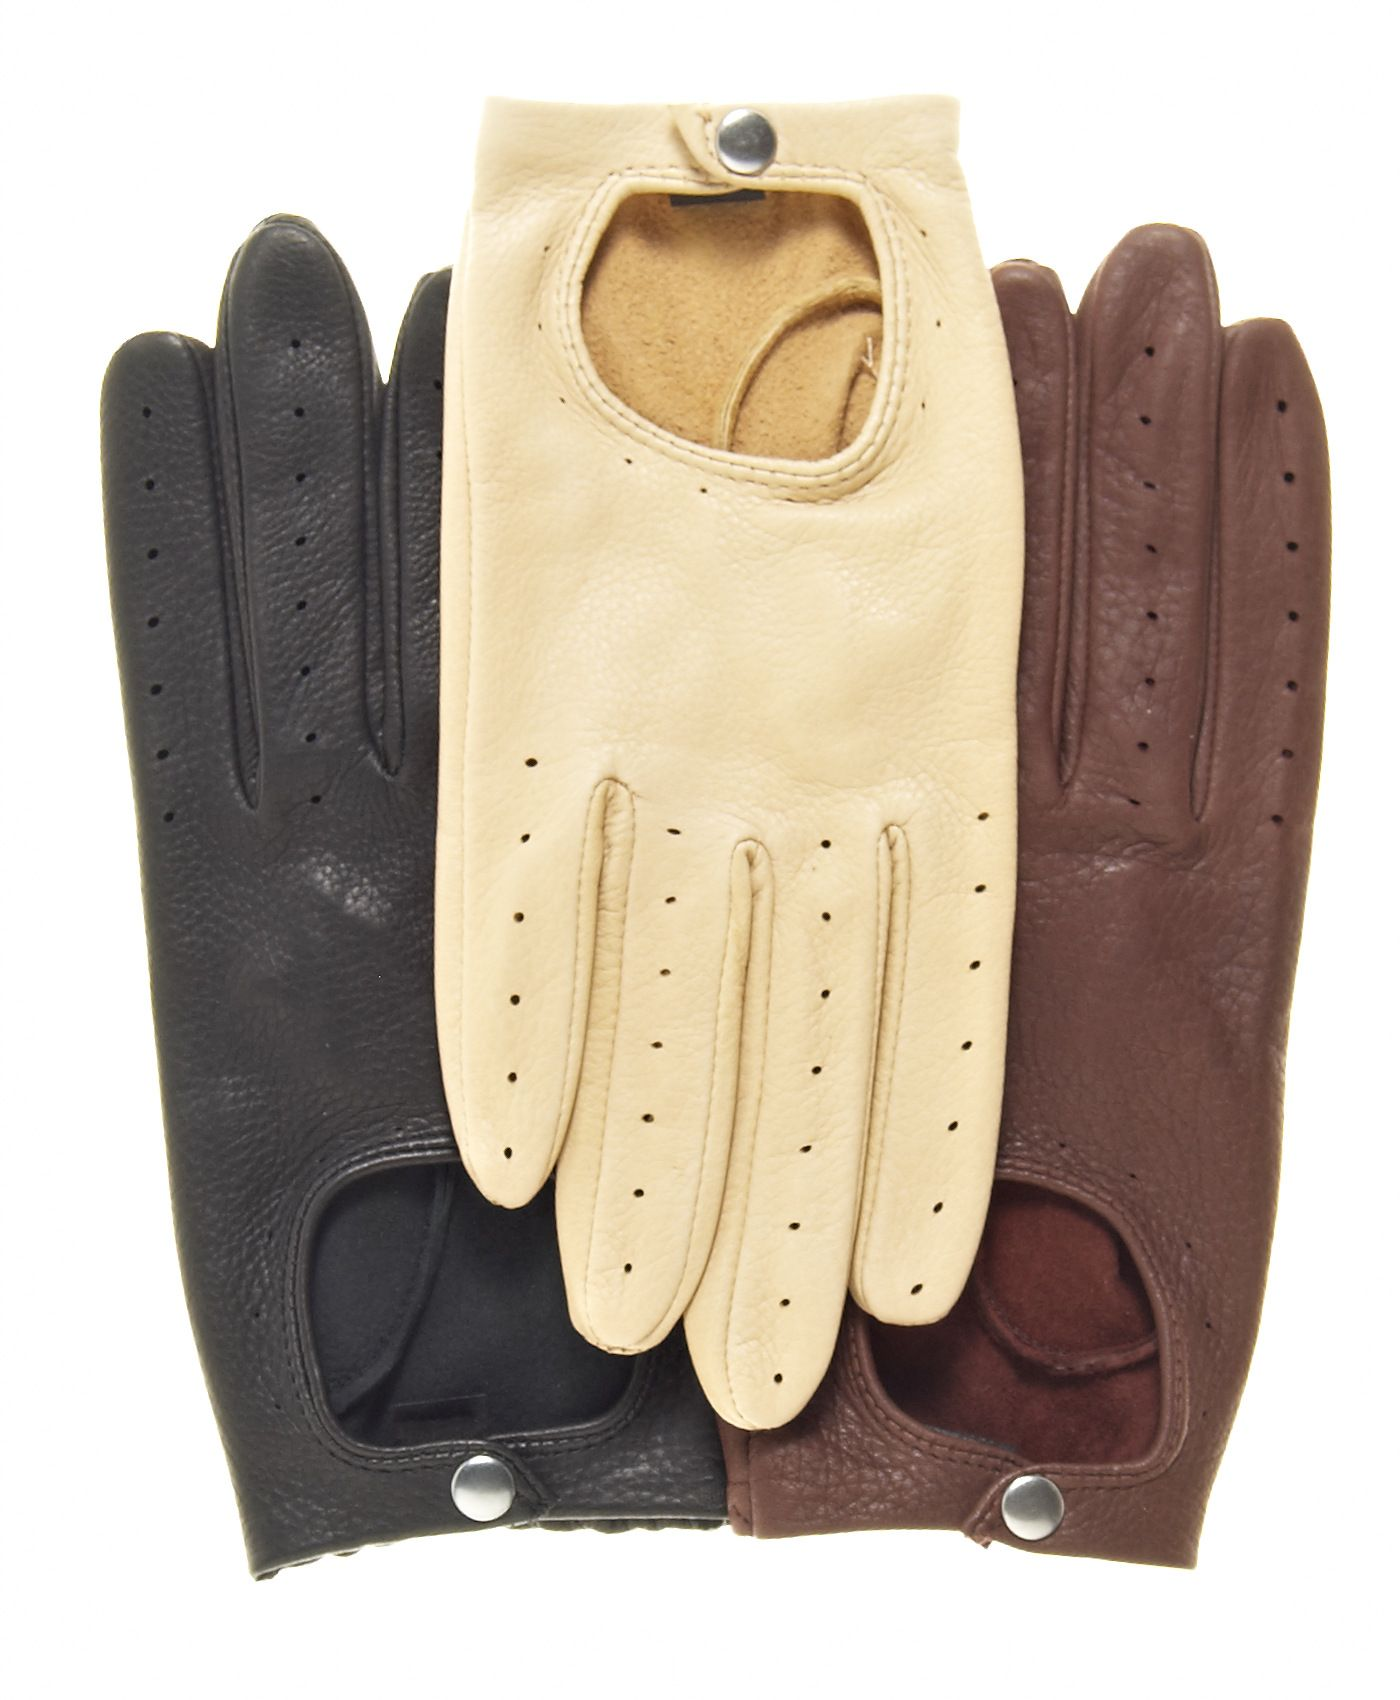 Fine North American deerskin combined with classic styling make these women's deerskin driving gloves as good looking as they are comfortable. A classic for a very good price. Imported.